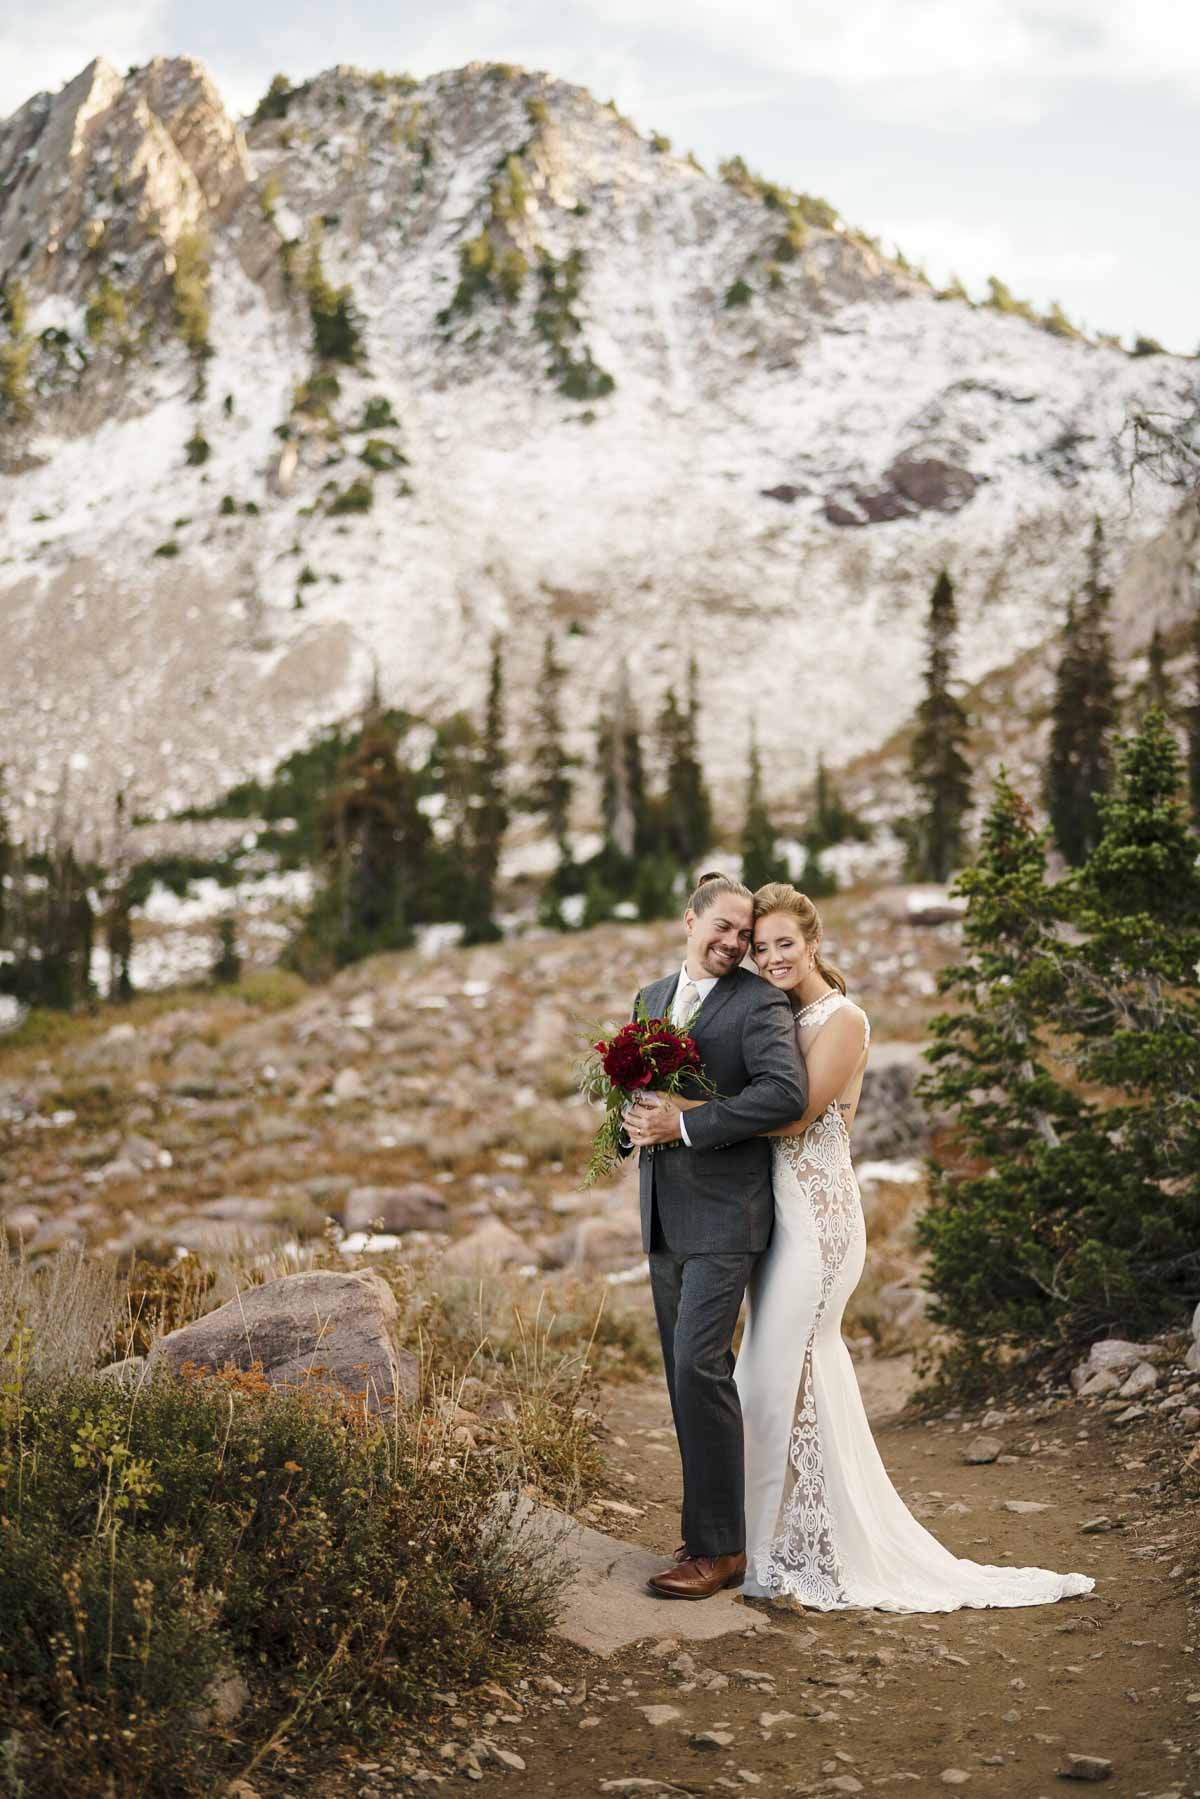 Snowbasin wedding bride and groom intimate portrait photo